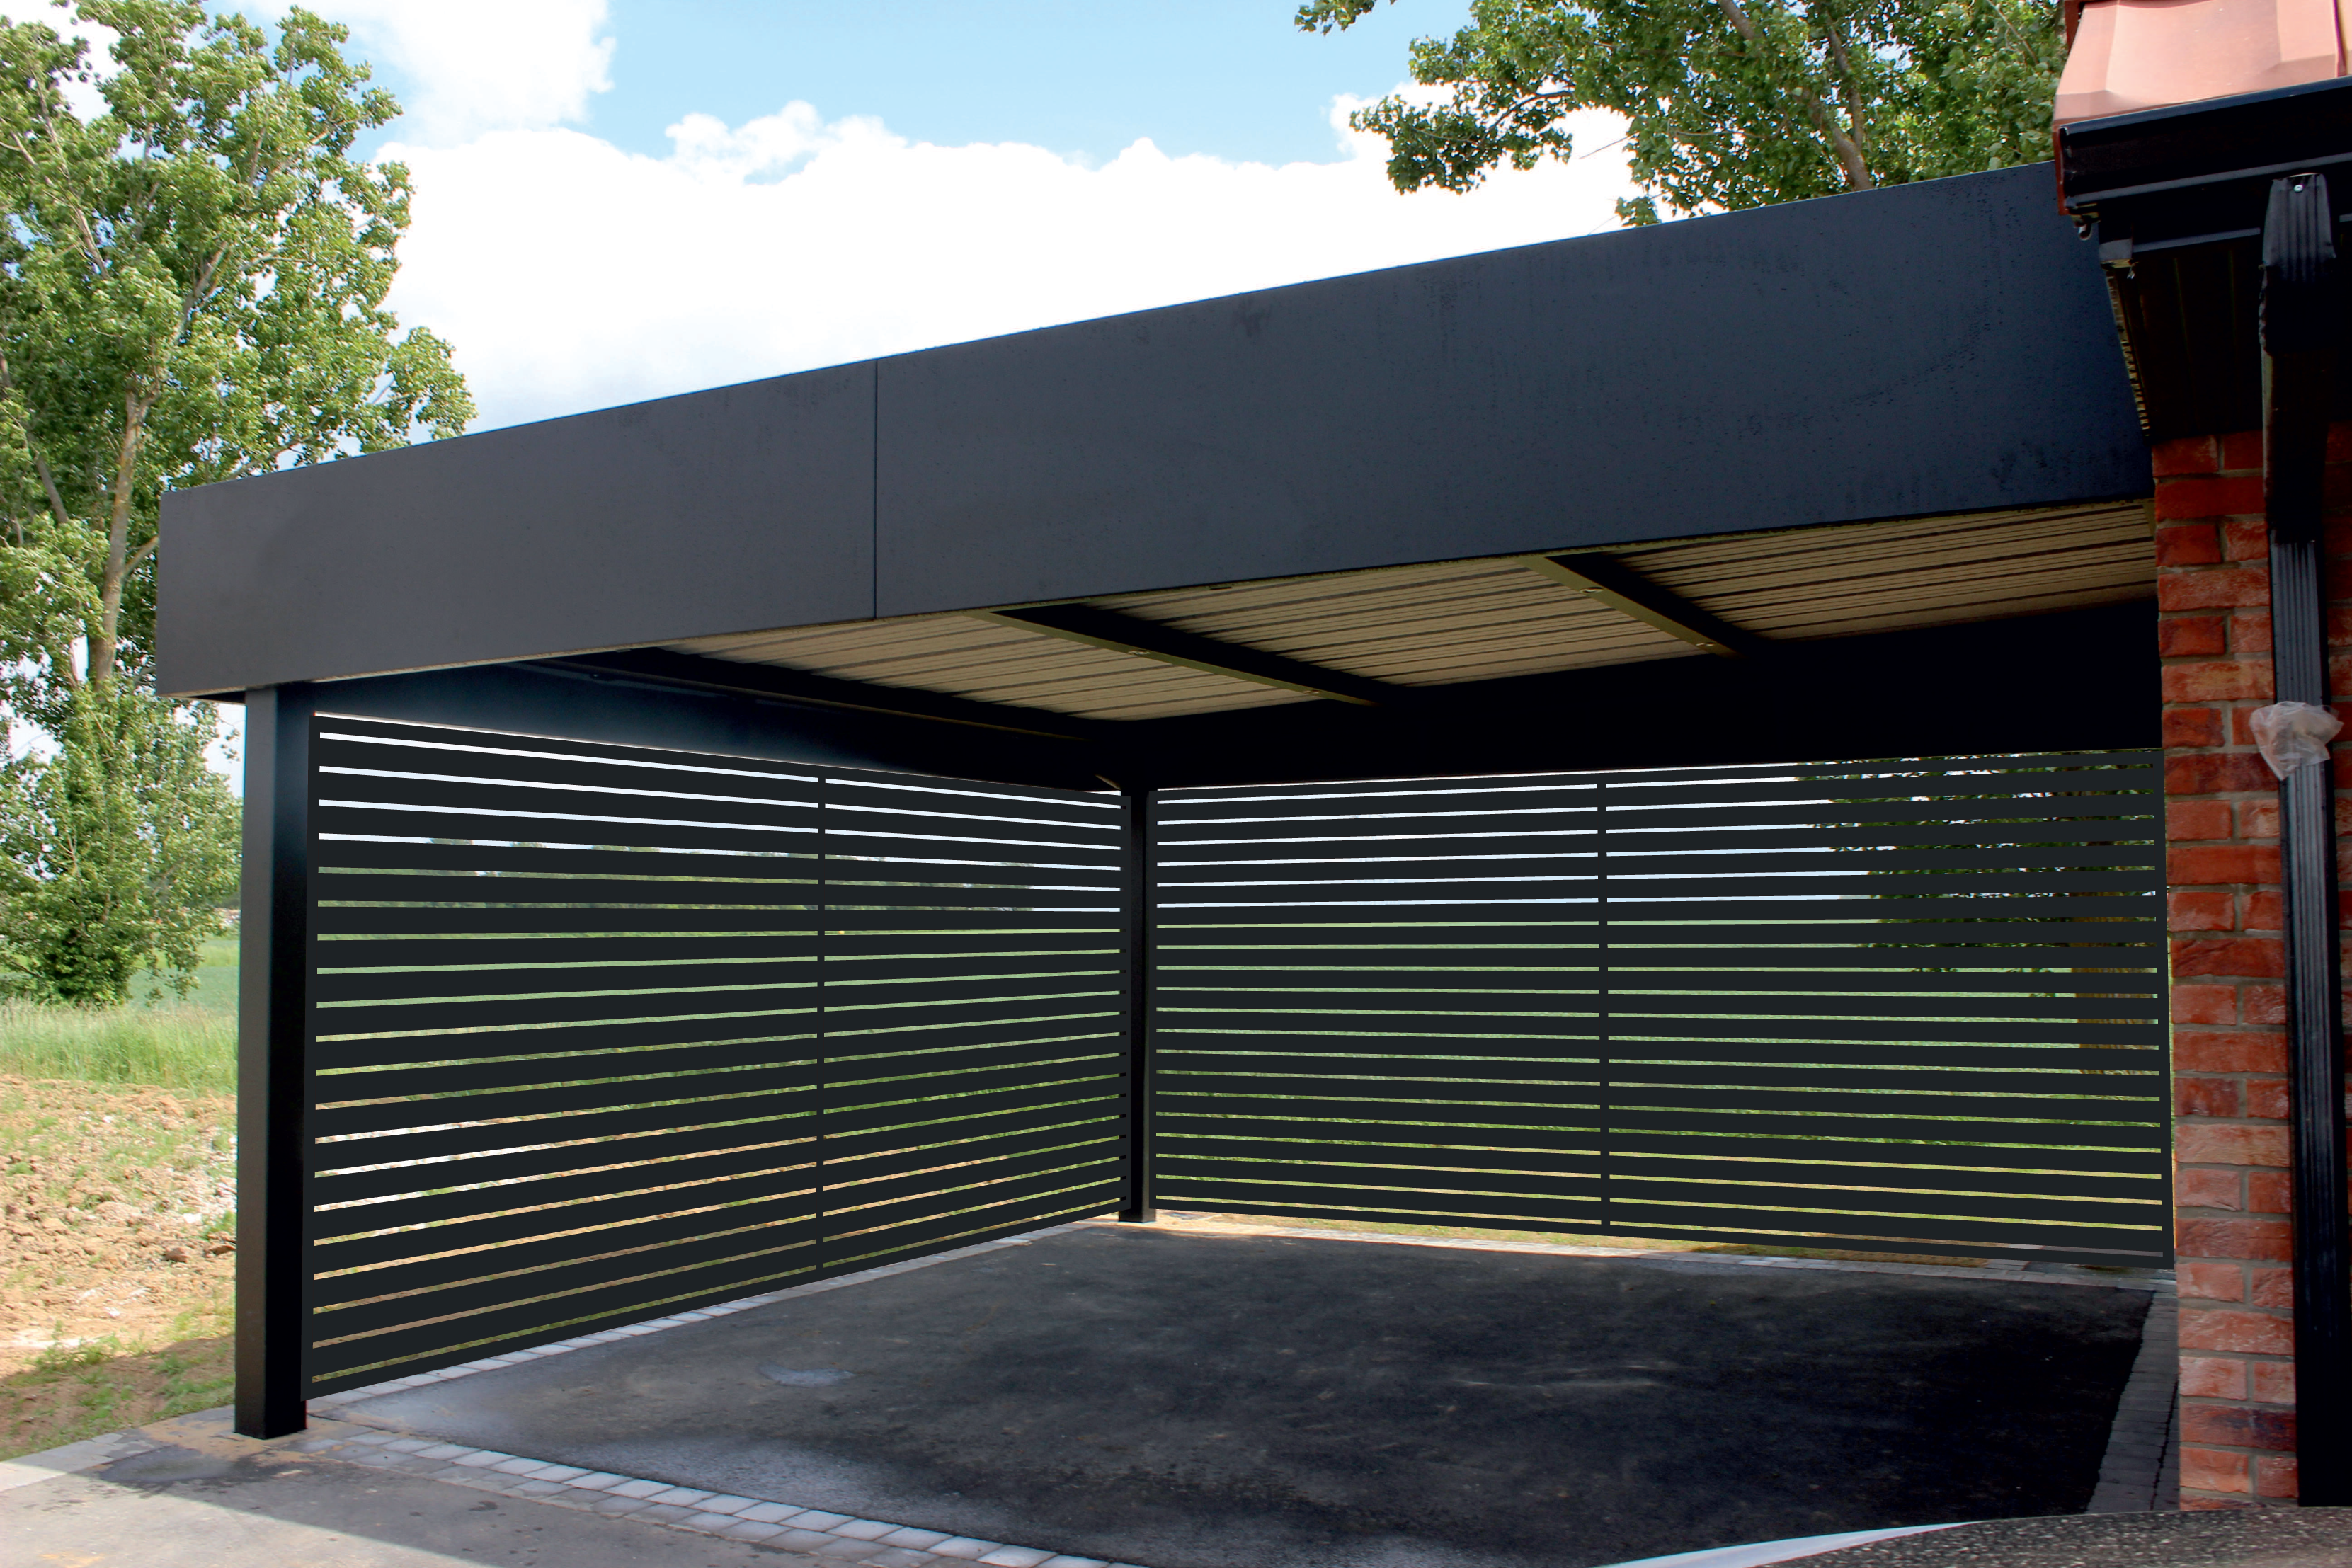 carport aluminium tori portails carport patio carport garage car garage modern garage